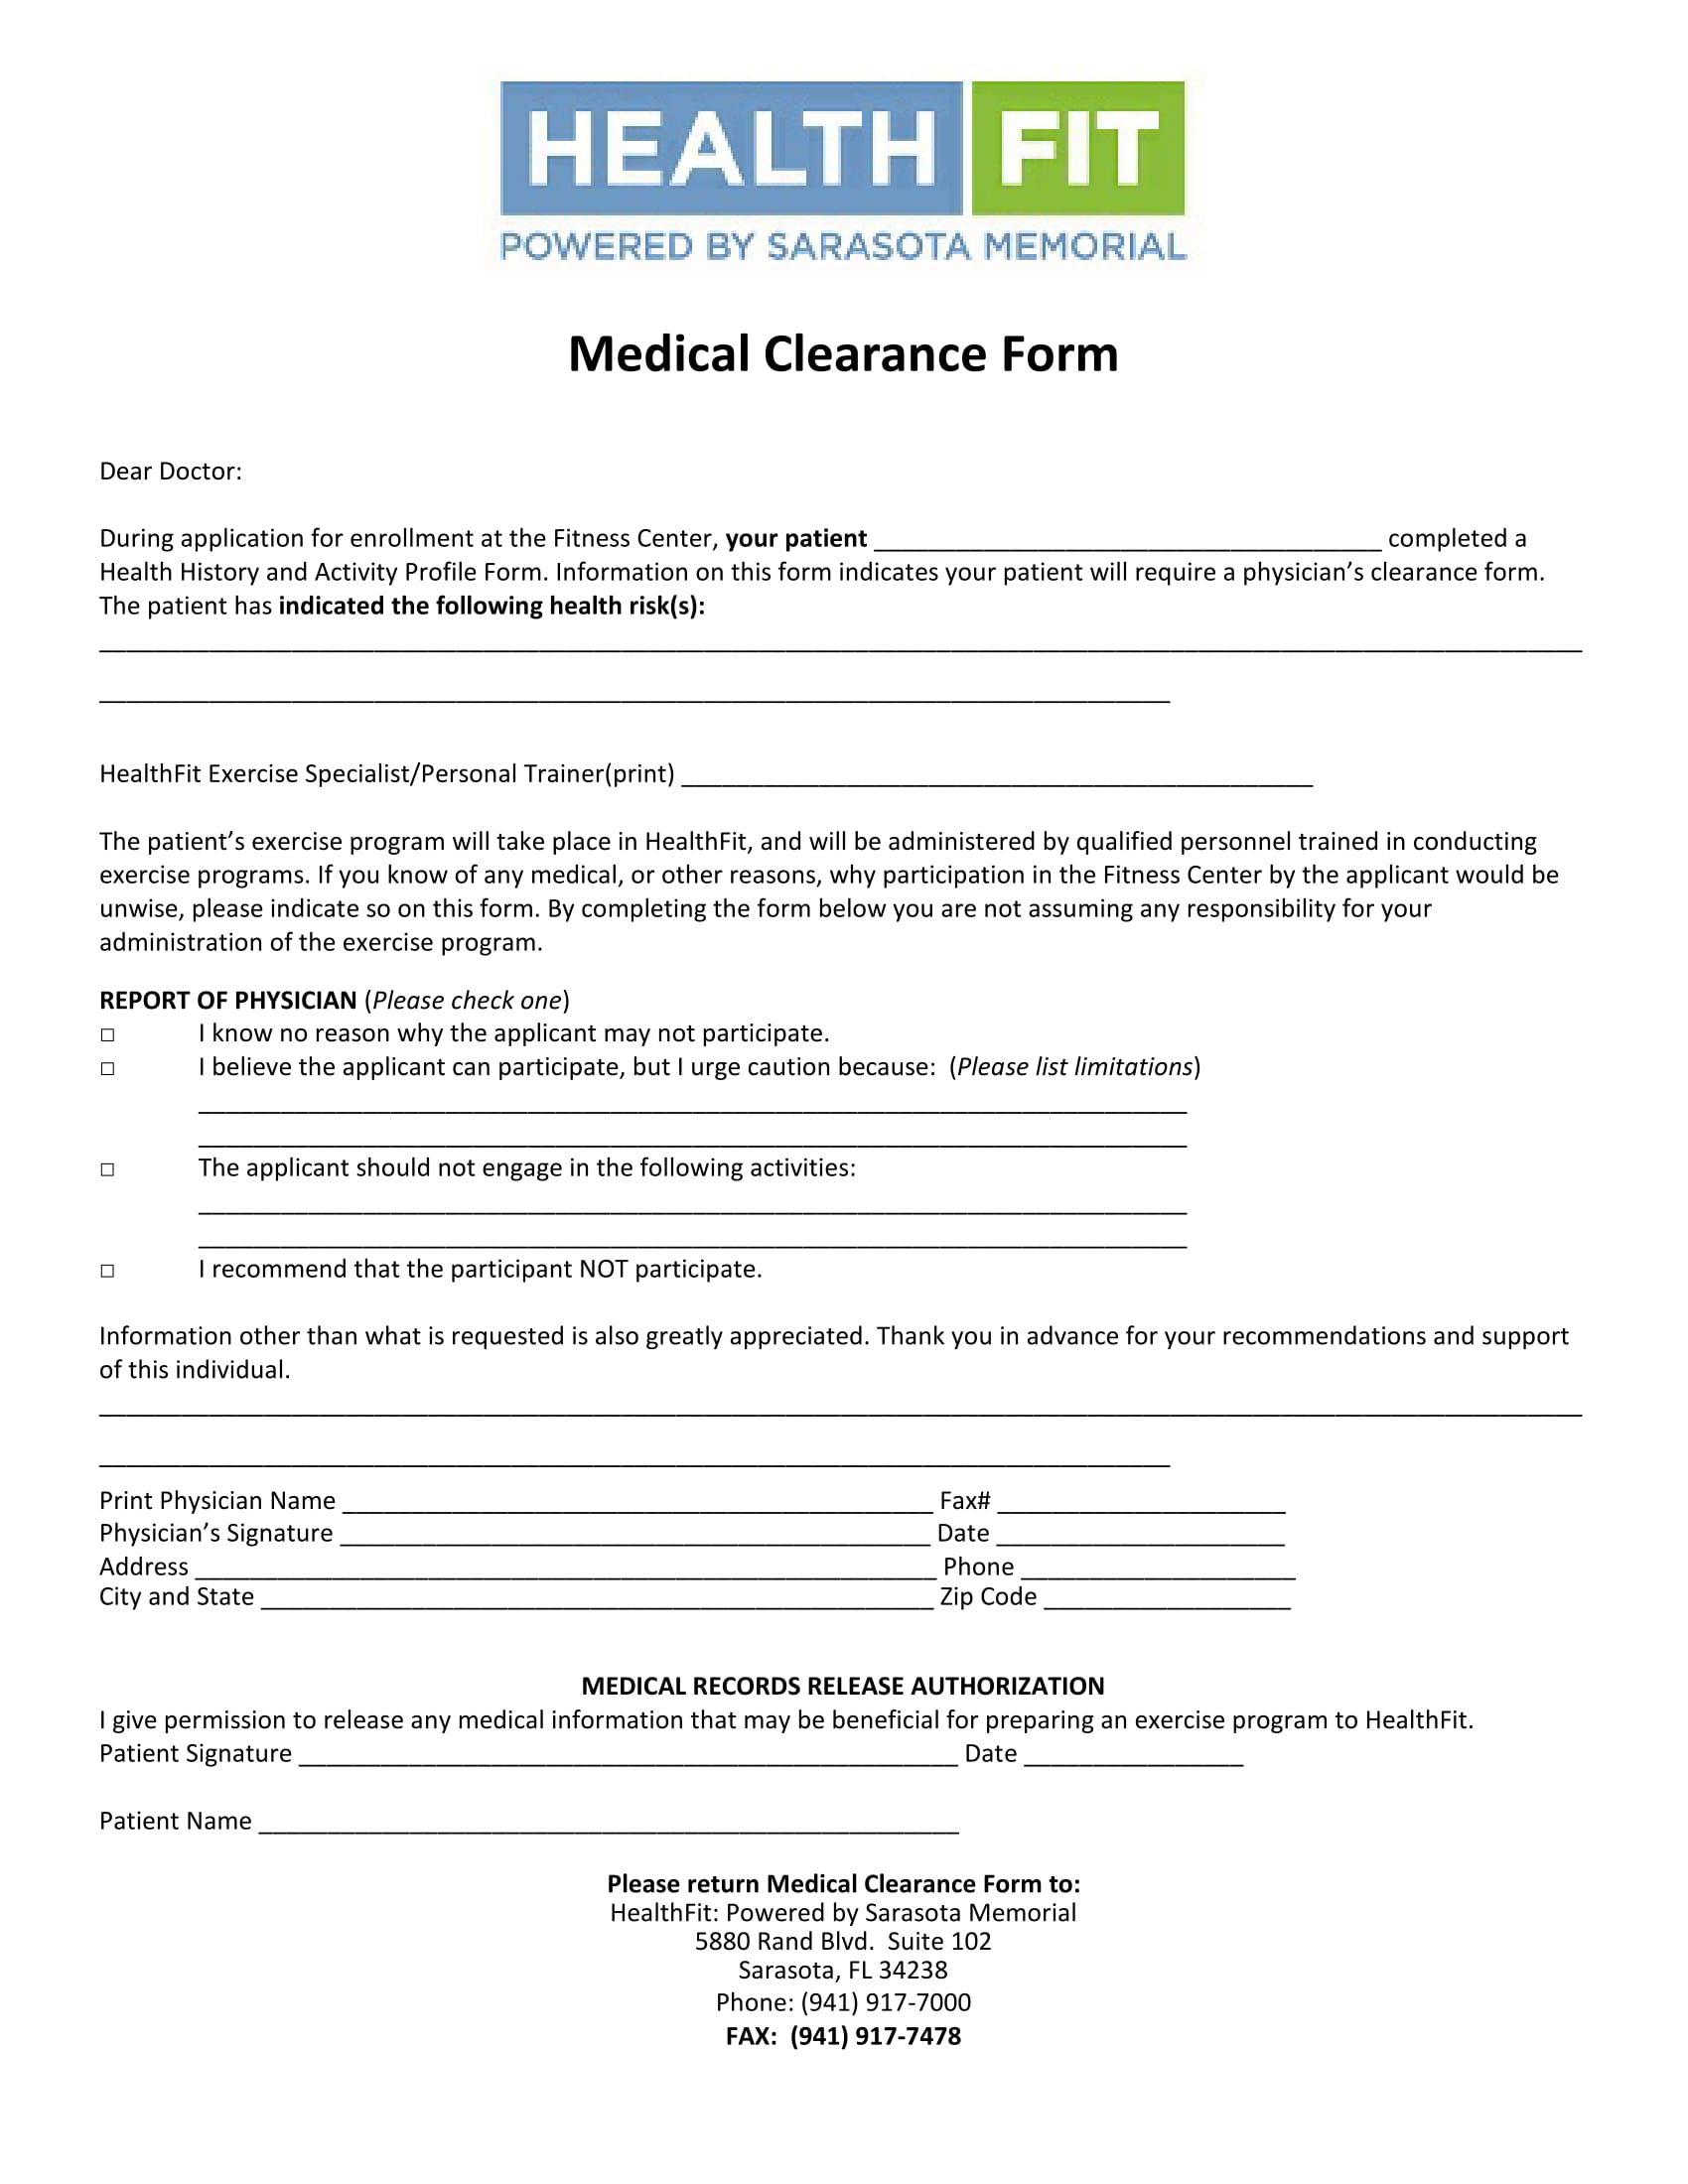 30+ Medical Clearance Forms in PDF - Free PDF Format Download on deportation form, employee absence report form, sample incident report form, order form, mental health consent form, vehicle seizure notice form, punishment form,